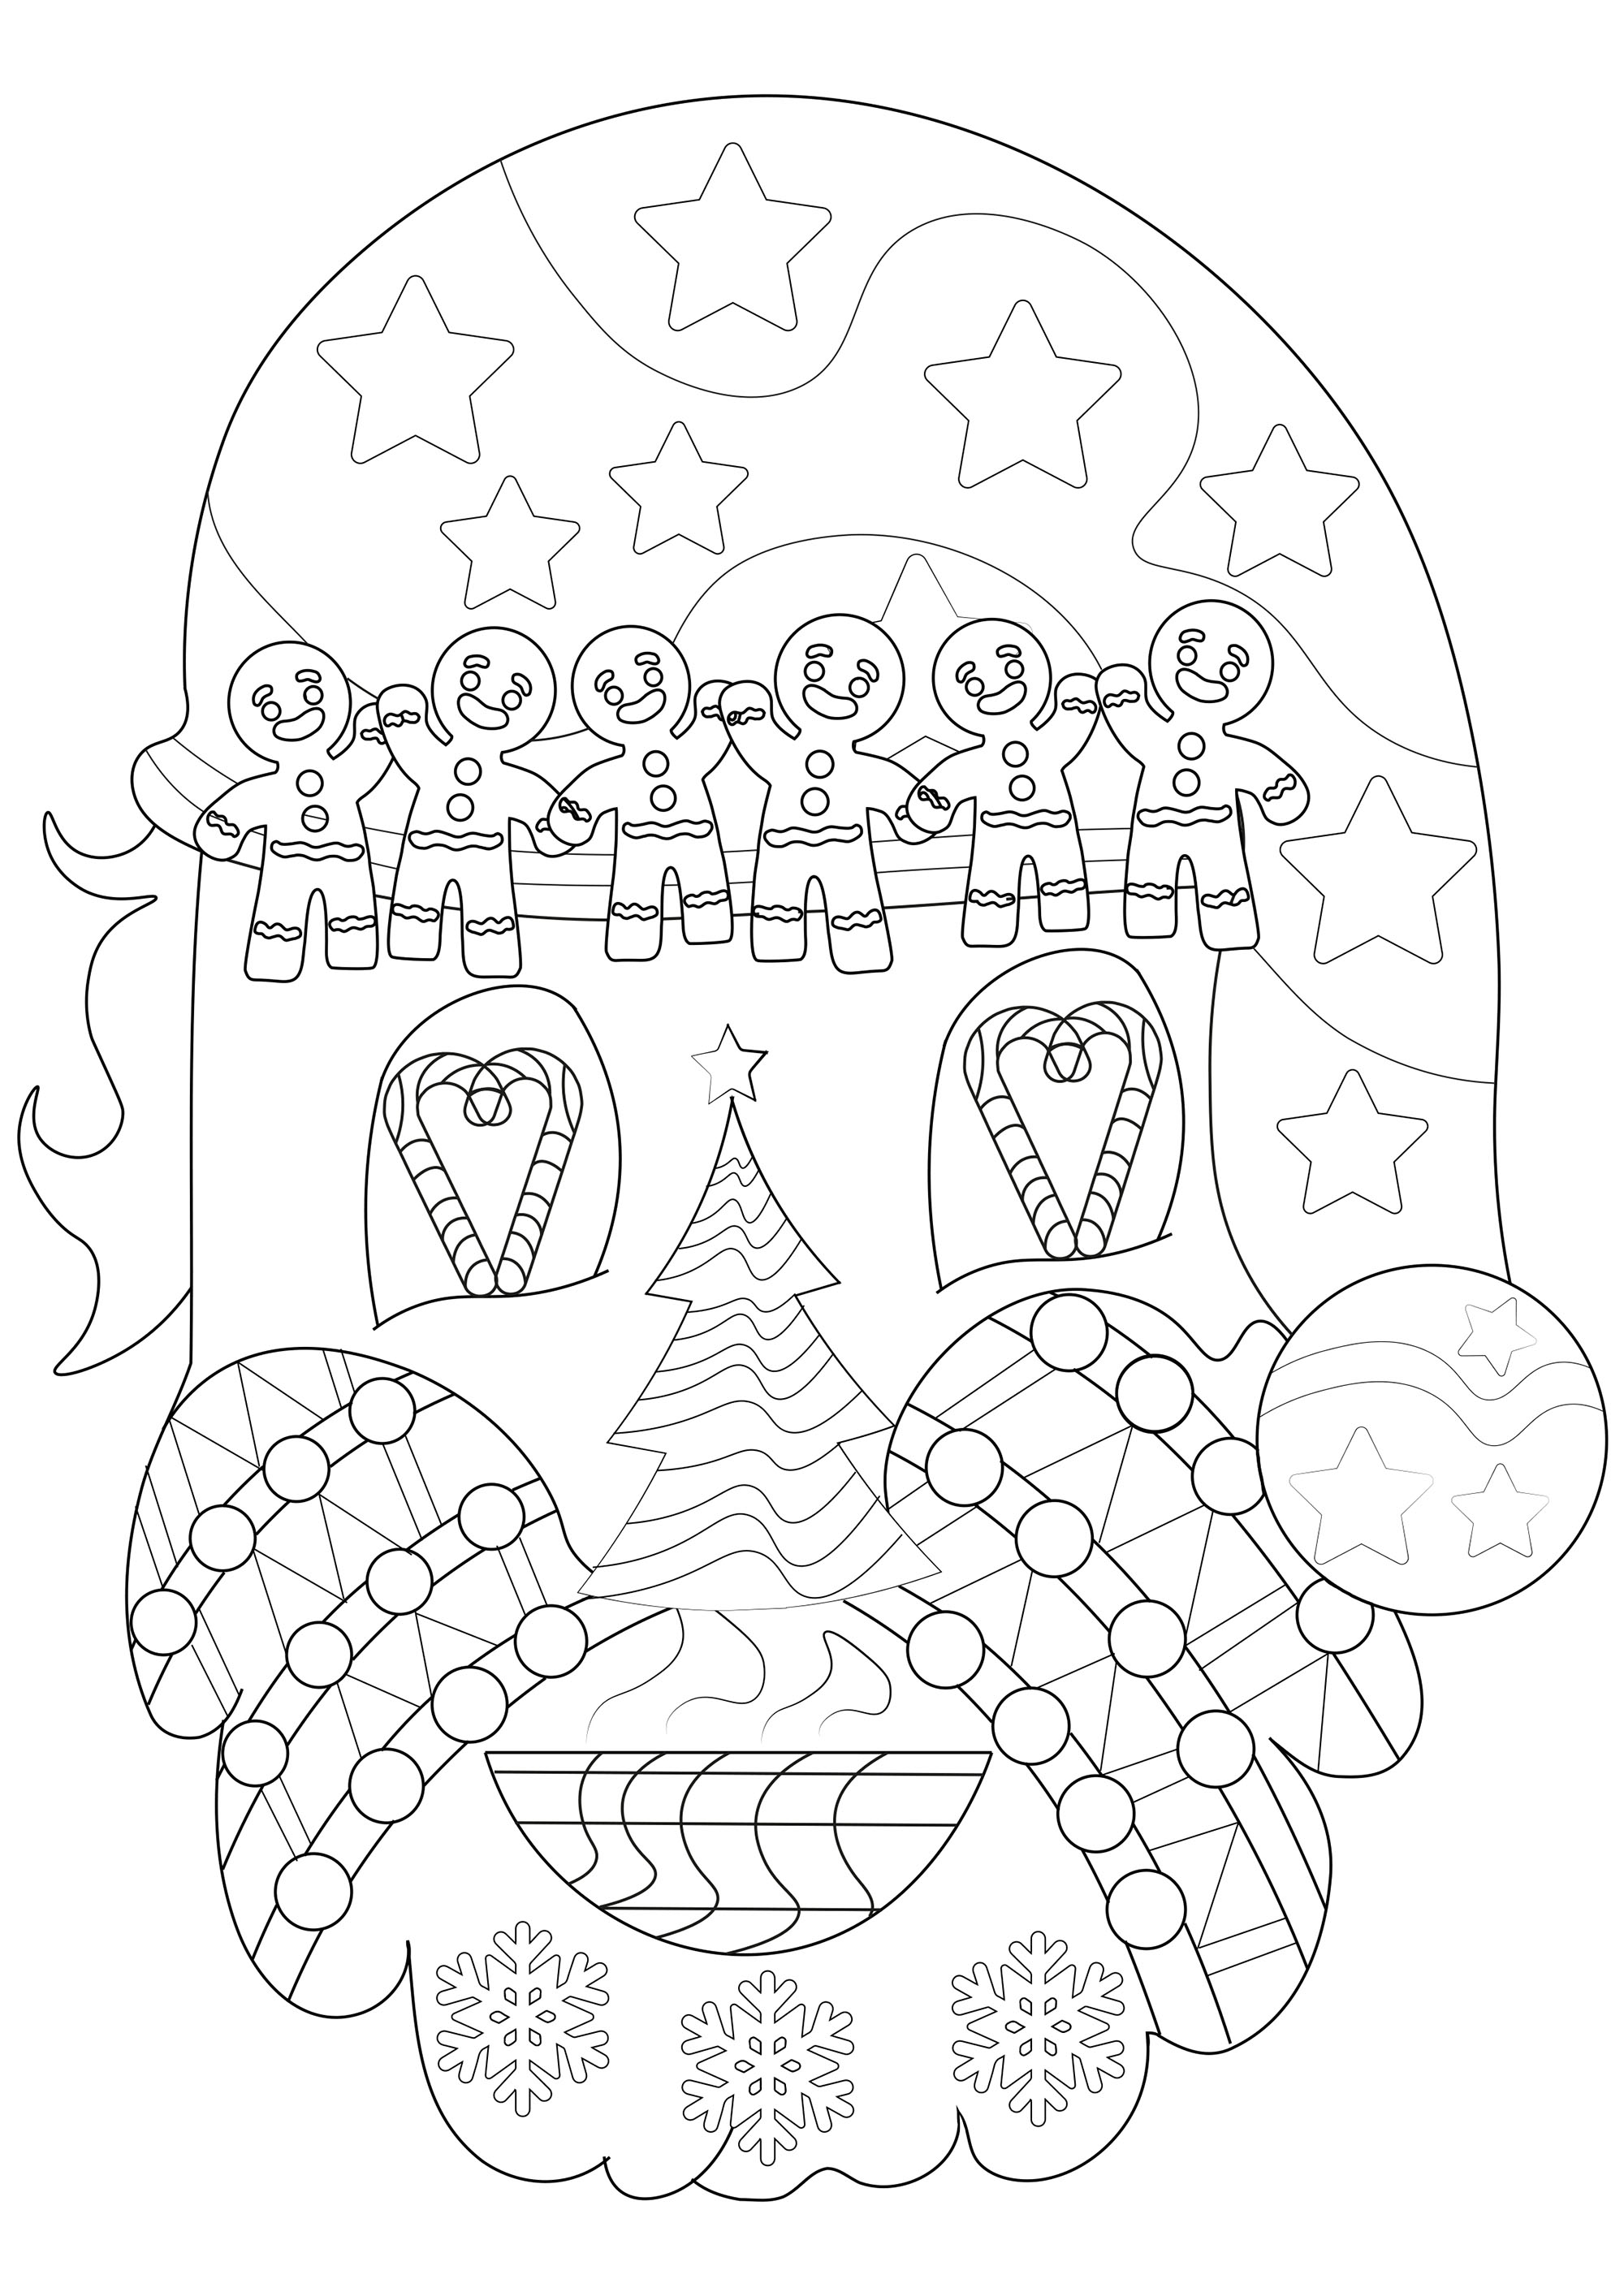 Color this Santa Claus head with various symbols of Christmas : tree, snowflakes, christmas garlands, christmas balls, hot chocolate, sweets, stars ...